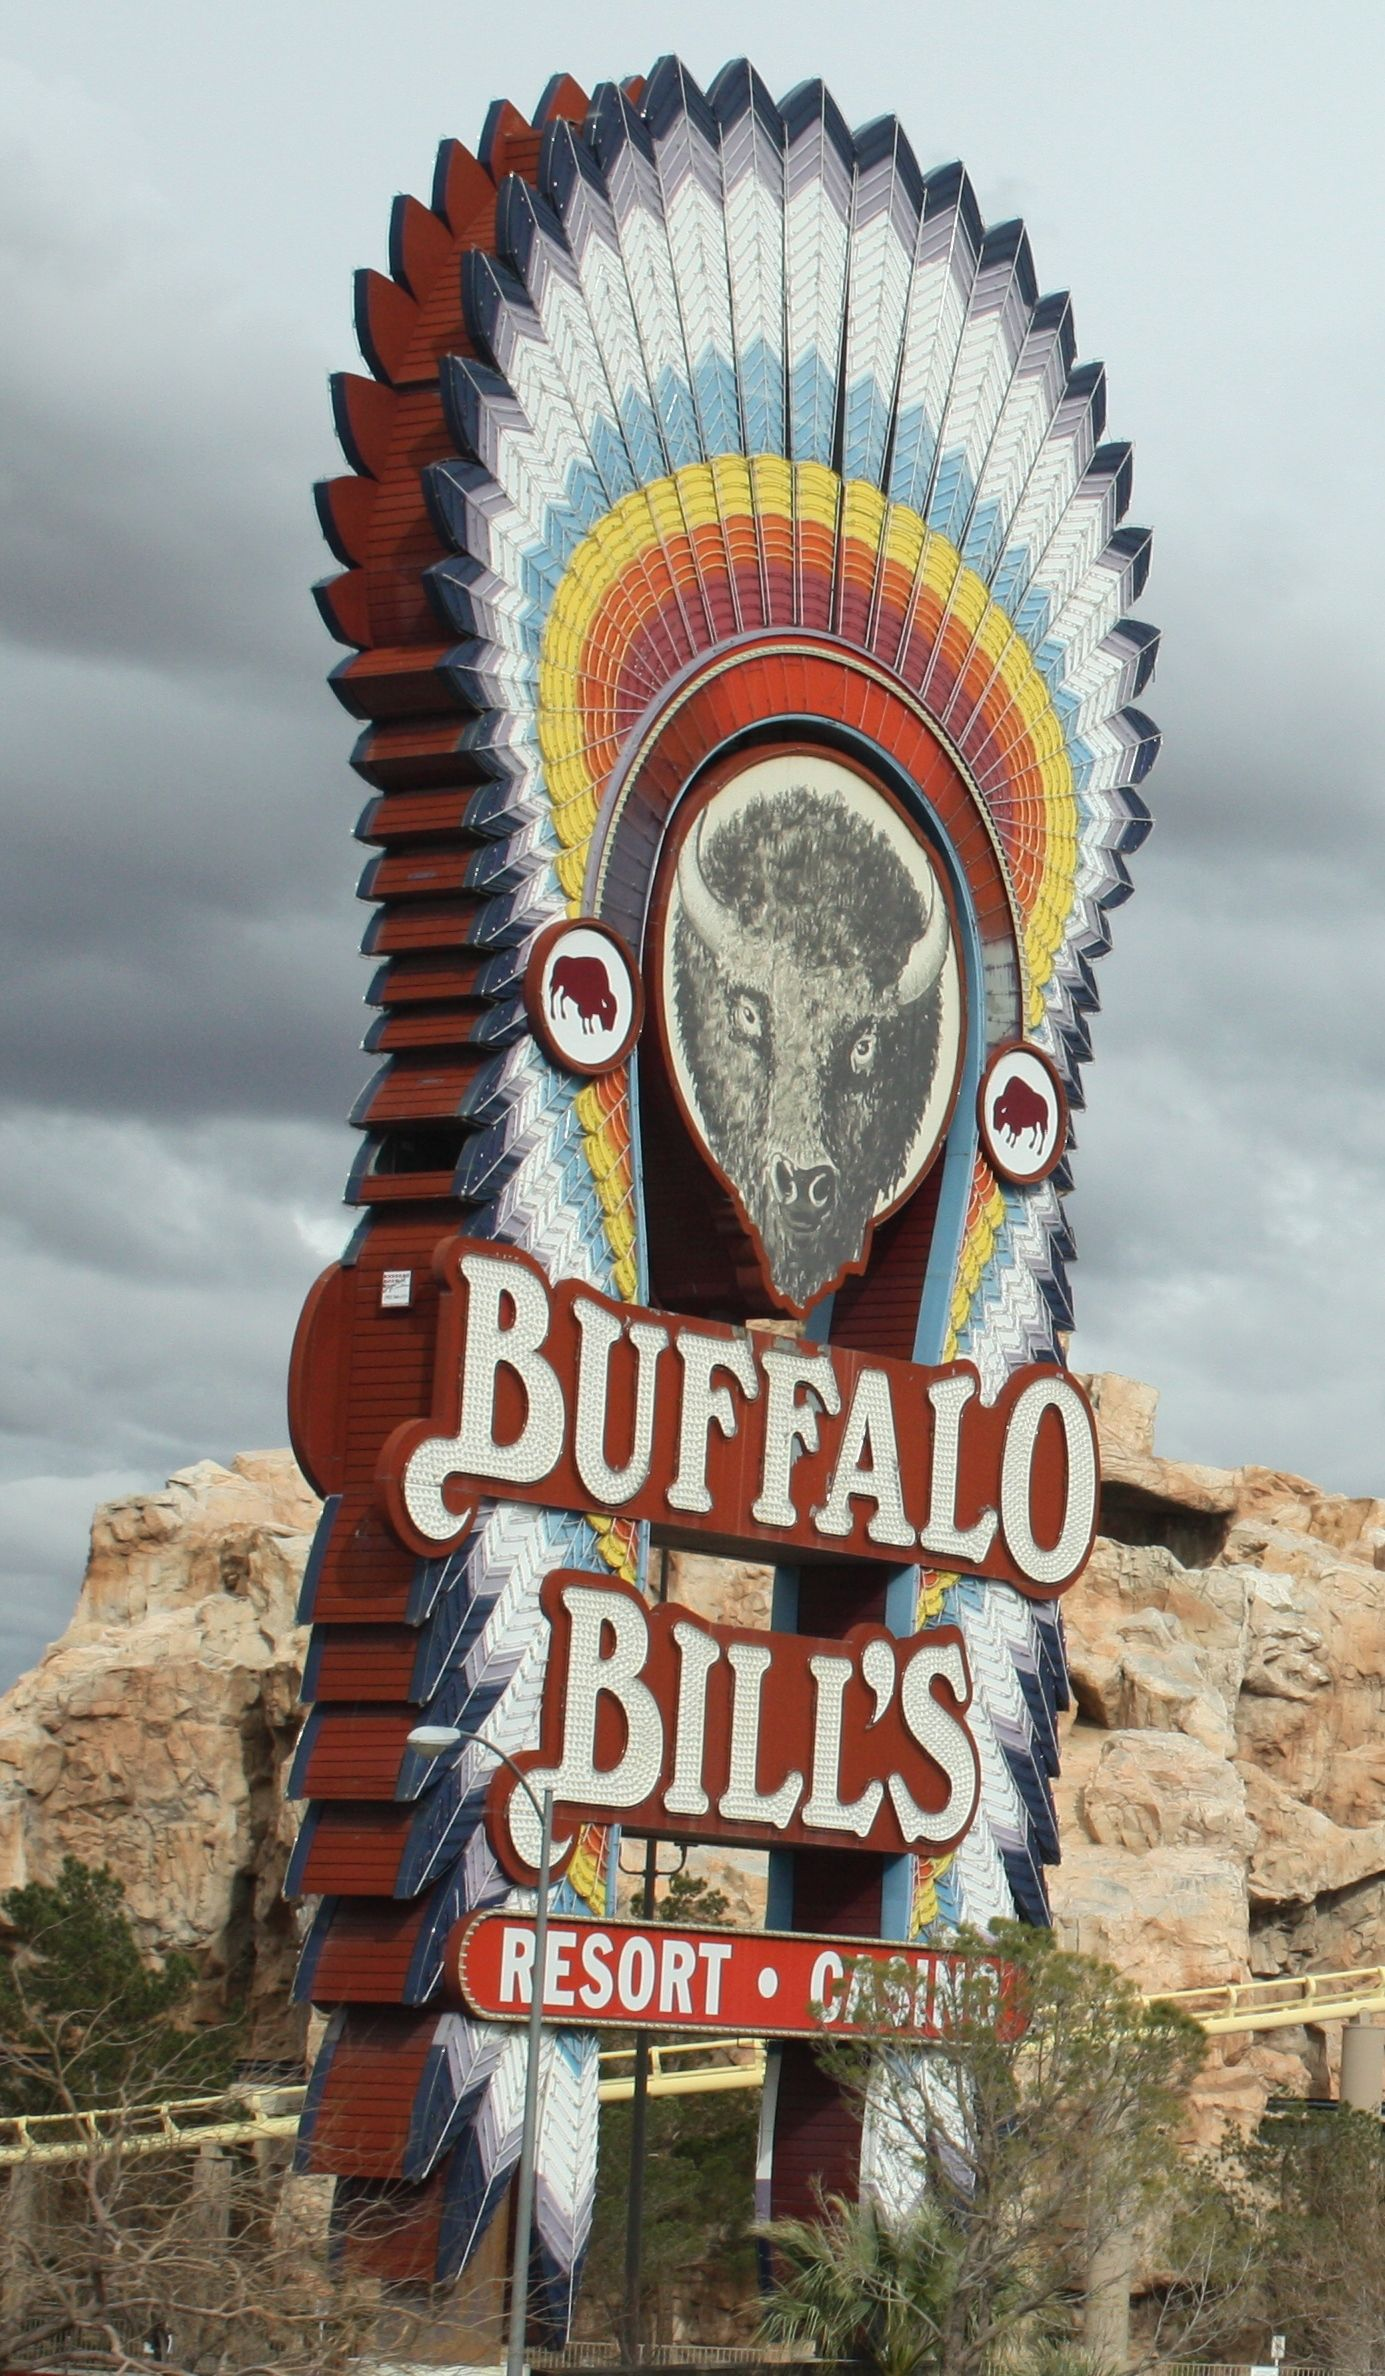 Buffalo Bill's is a hotel and casino in Primm, Nevada, United States, at the California state line. It is one of the Primm Valley Resorts, owned and operated by Affinity settlements-cause.ml has 1, guest rooms and suites. The hotel is home to the Desperado roller coaster, one of the tallest ( foot drop) and fastest (80 mph) roller coasters in the world, as well as a pool in the shape of a buffalo.